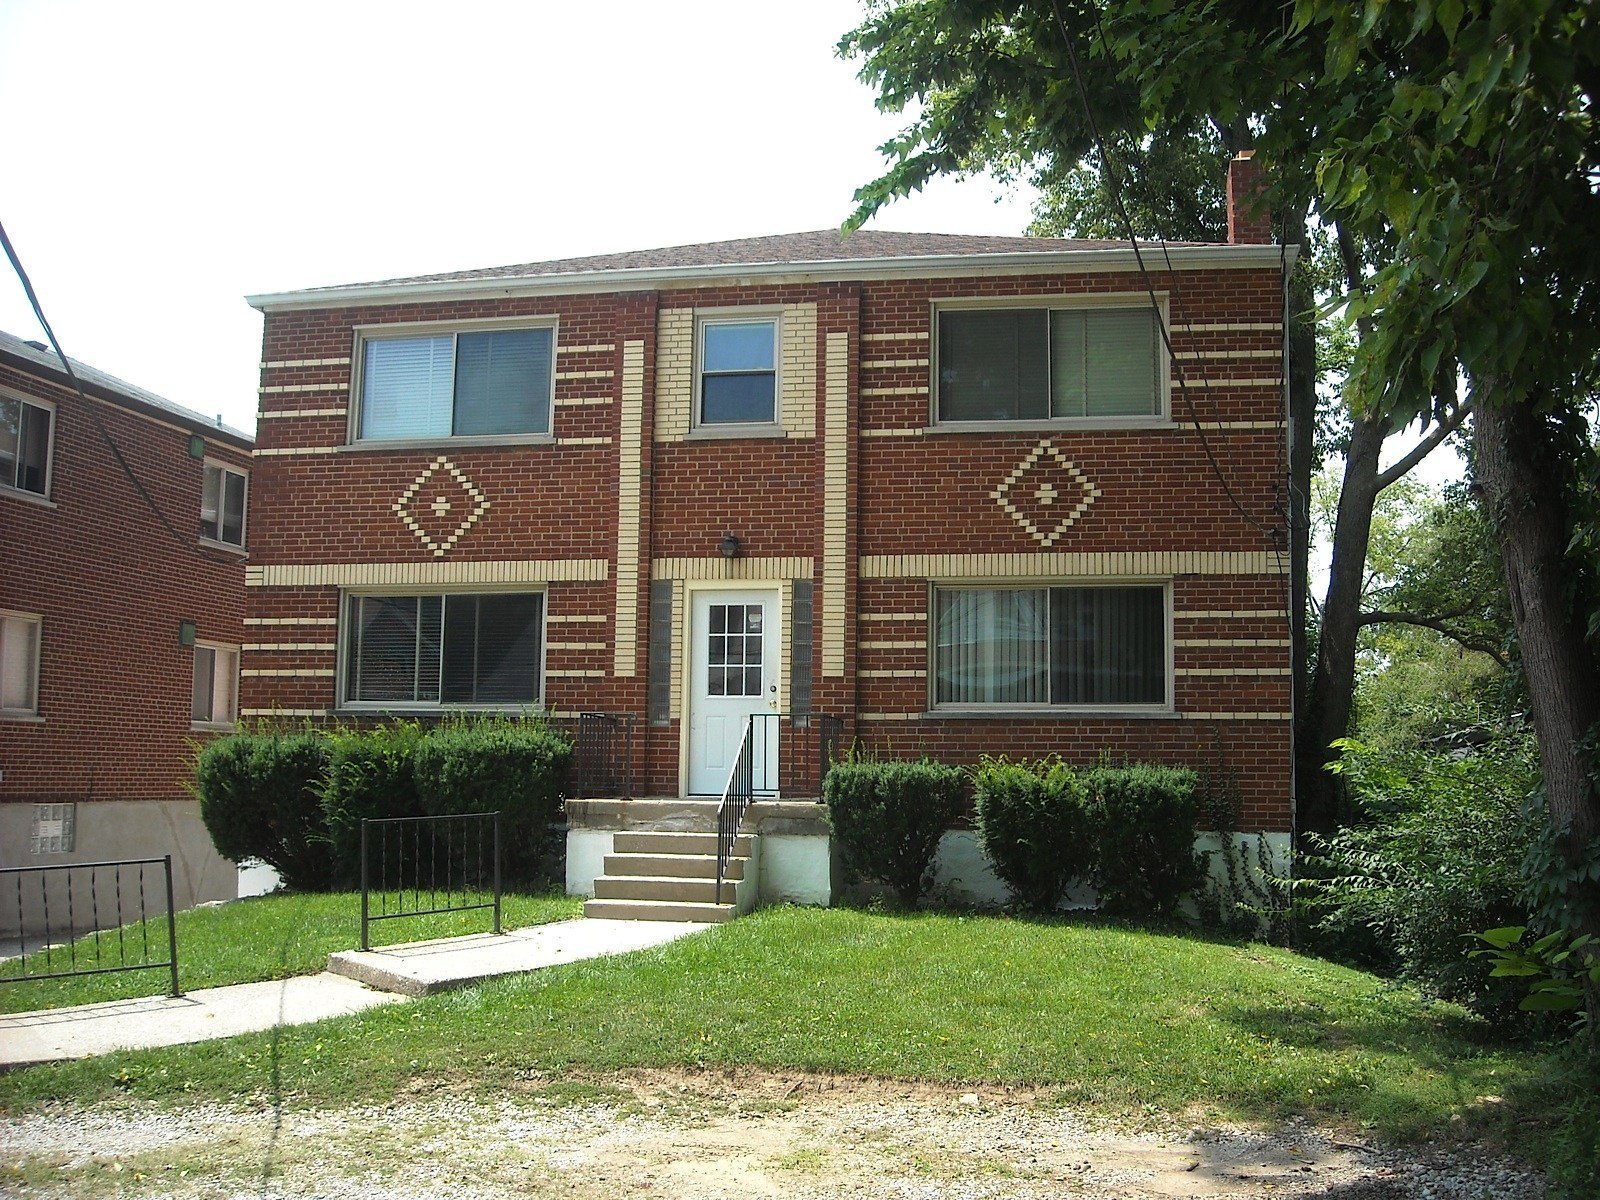 Best One Bedroom Apartments Cincinnati Ohio Under 500 Near Me With Pictures